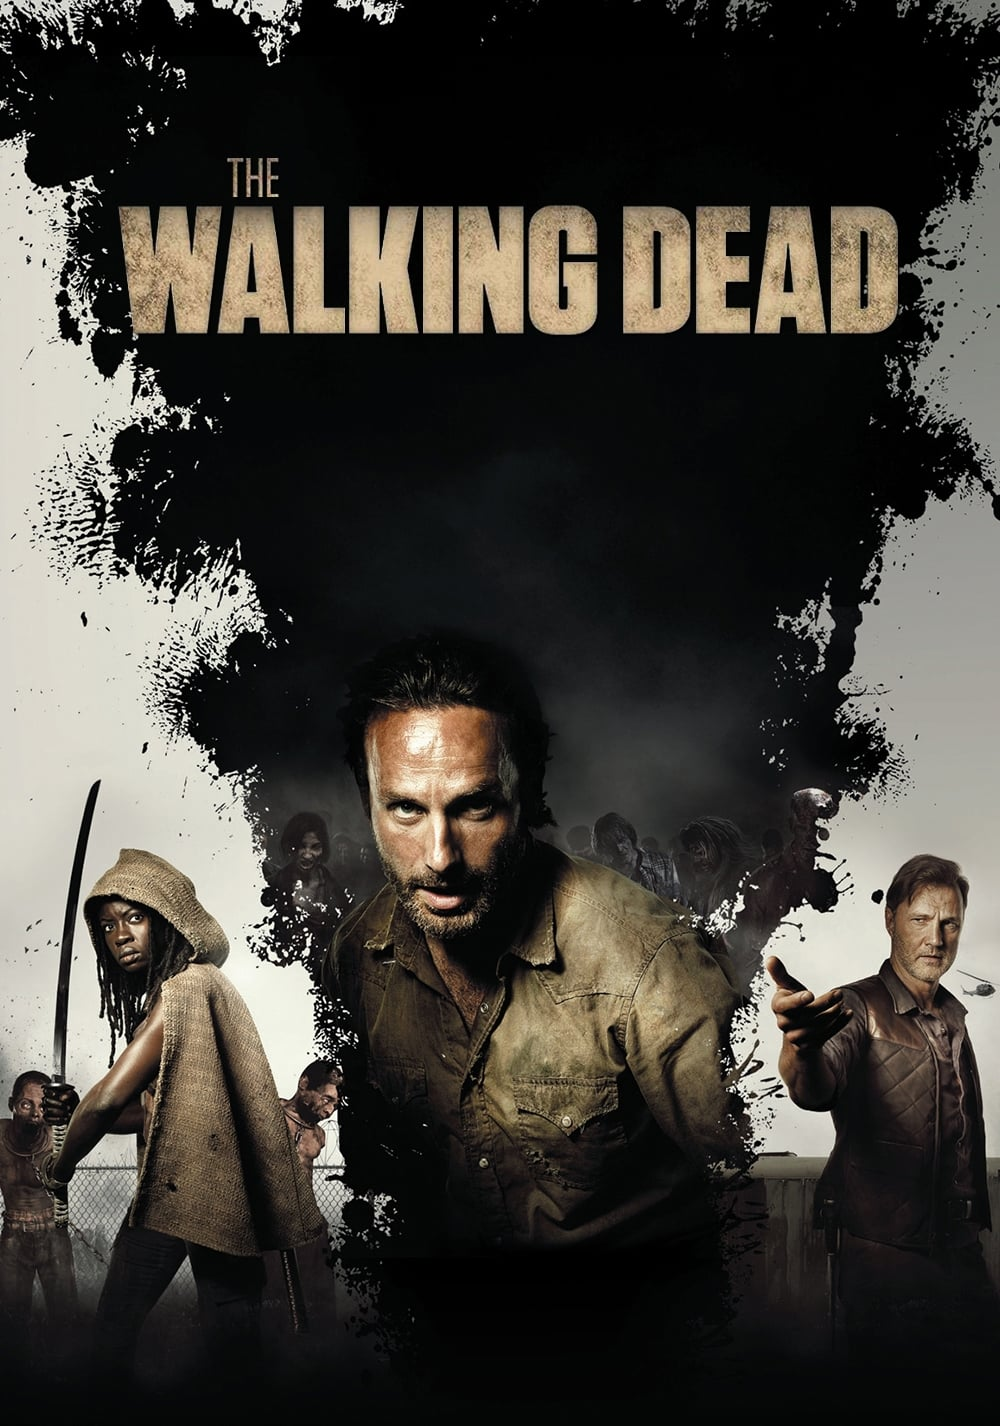 http://www.thepiratefilmeshd.com/the-walking-dead-3-temporada-bluray-rip-720p-dublado/